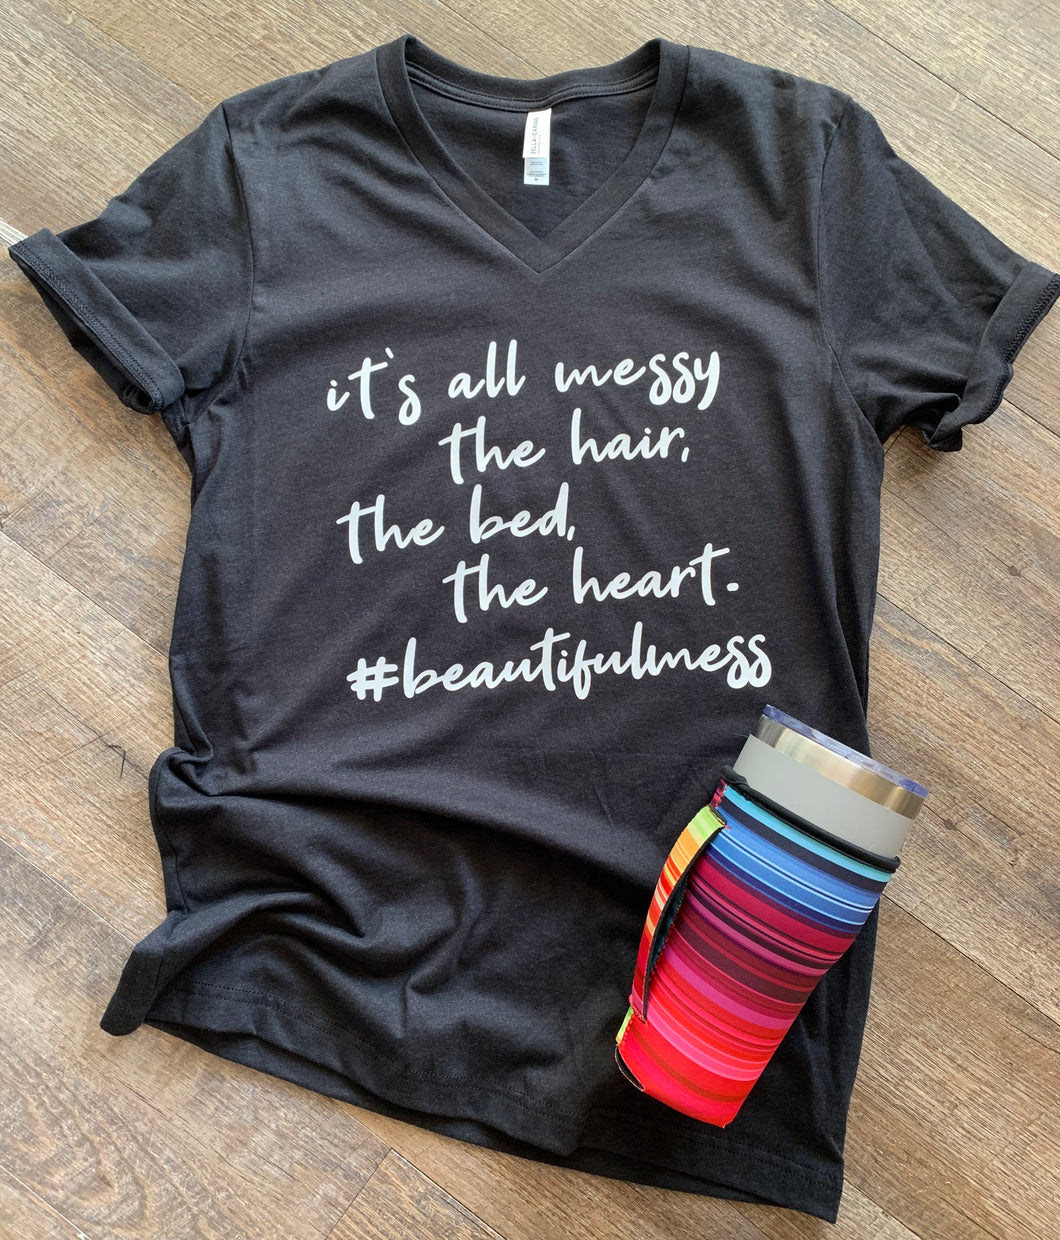 It's all messy the hair, the bed, the heart #beautifulmess custom womens vneck graphic tee tshirt - Mavictoria Designs Hot Press Express